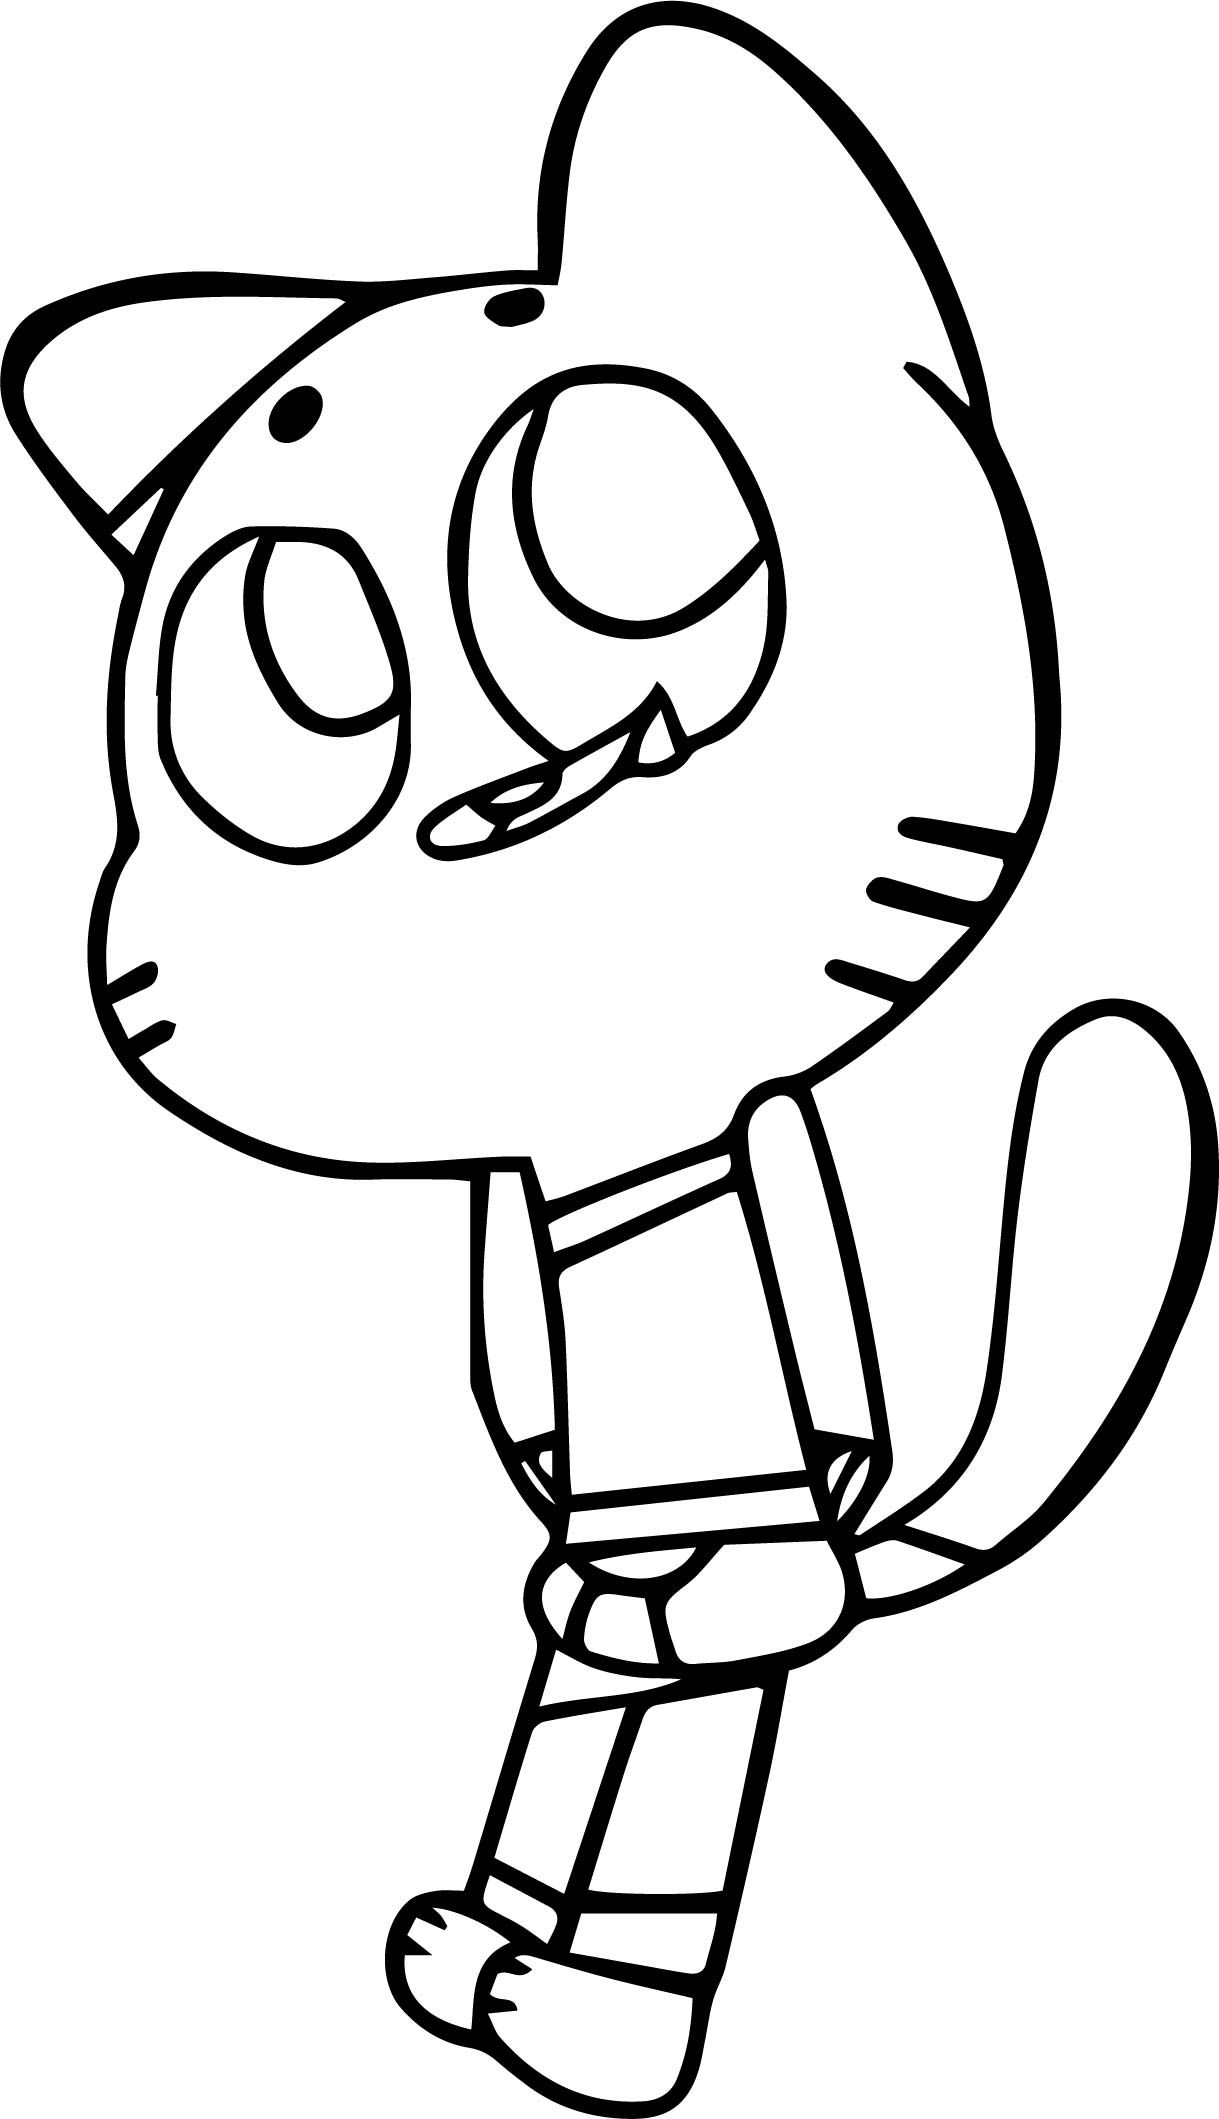 Cool The Amazing World Of Gumball Image Coloring Page Gumball